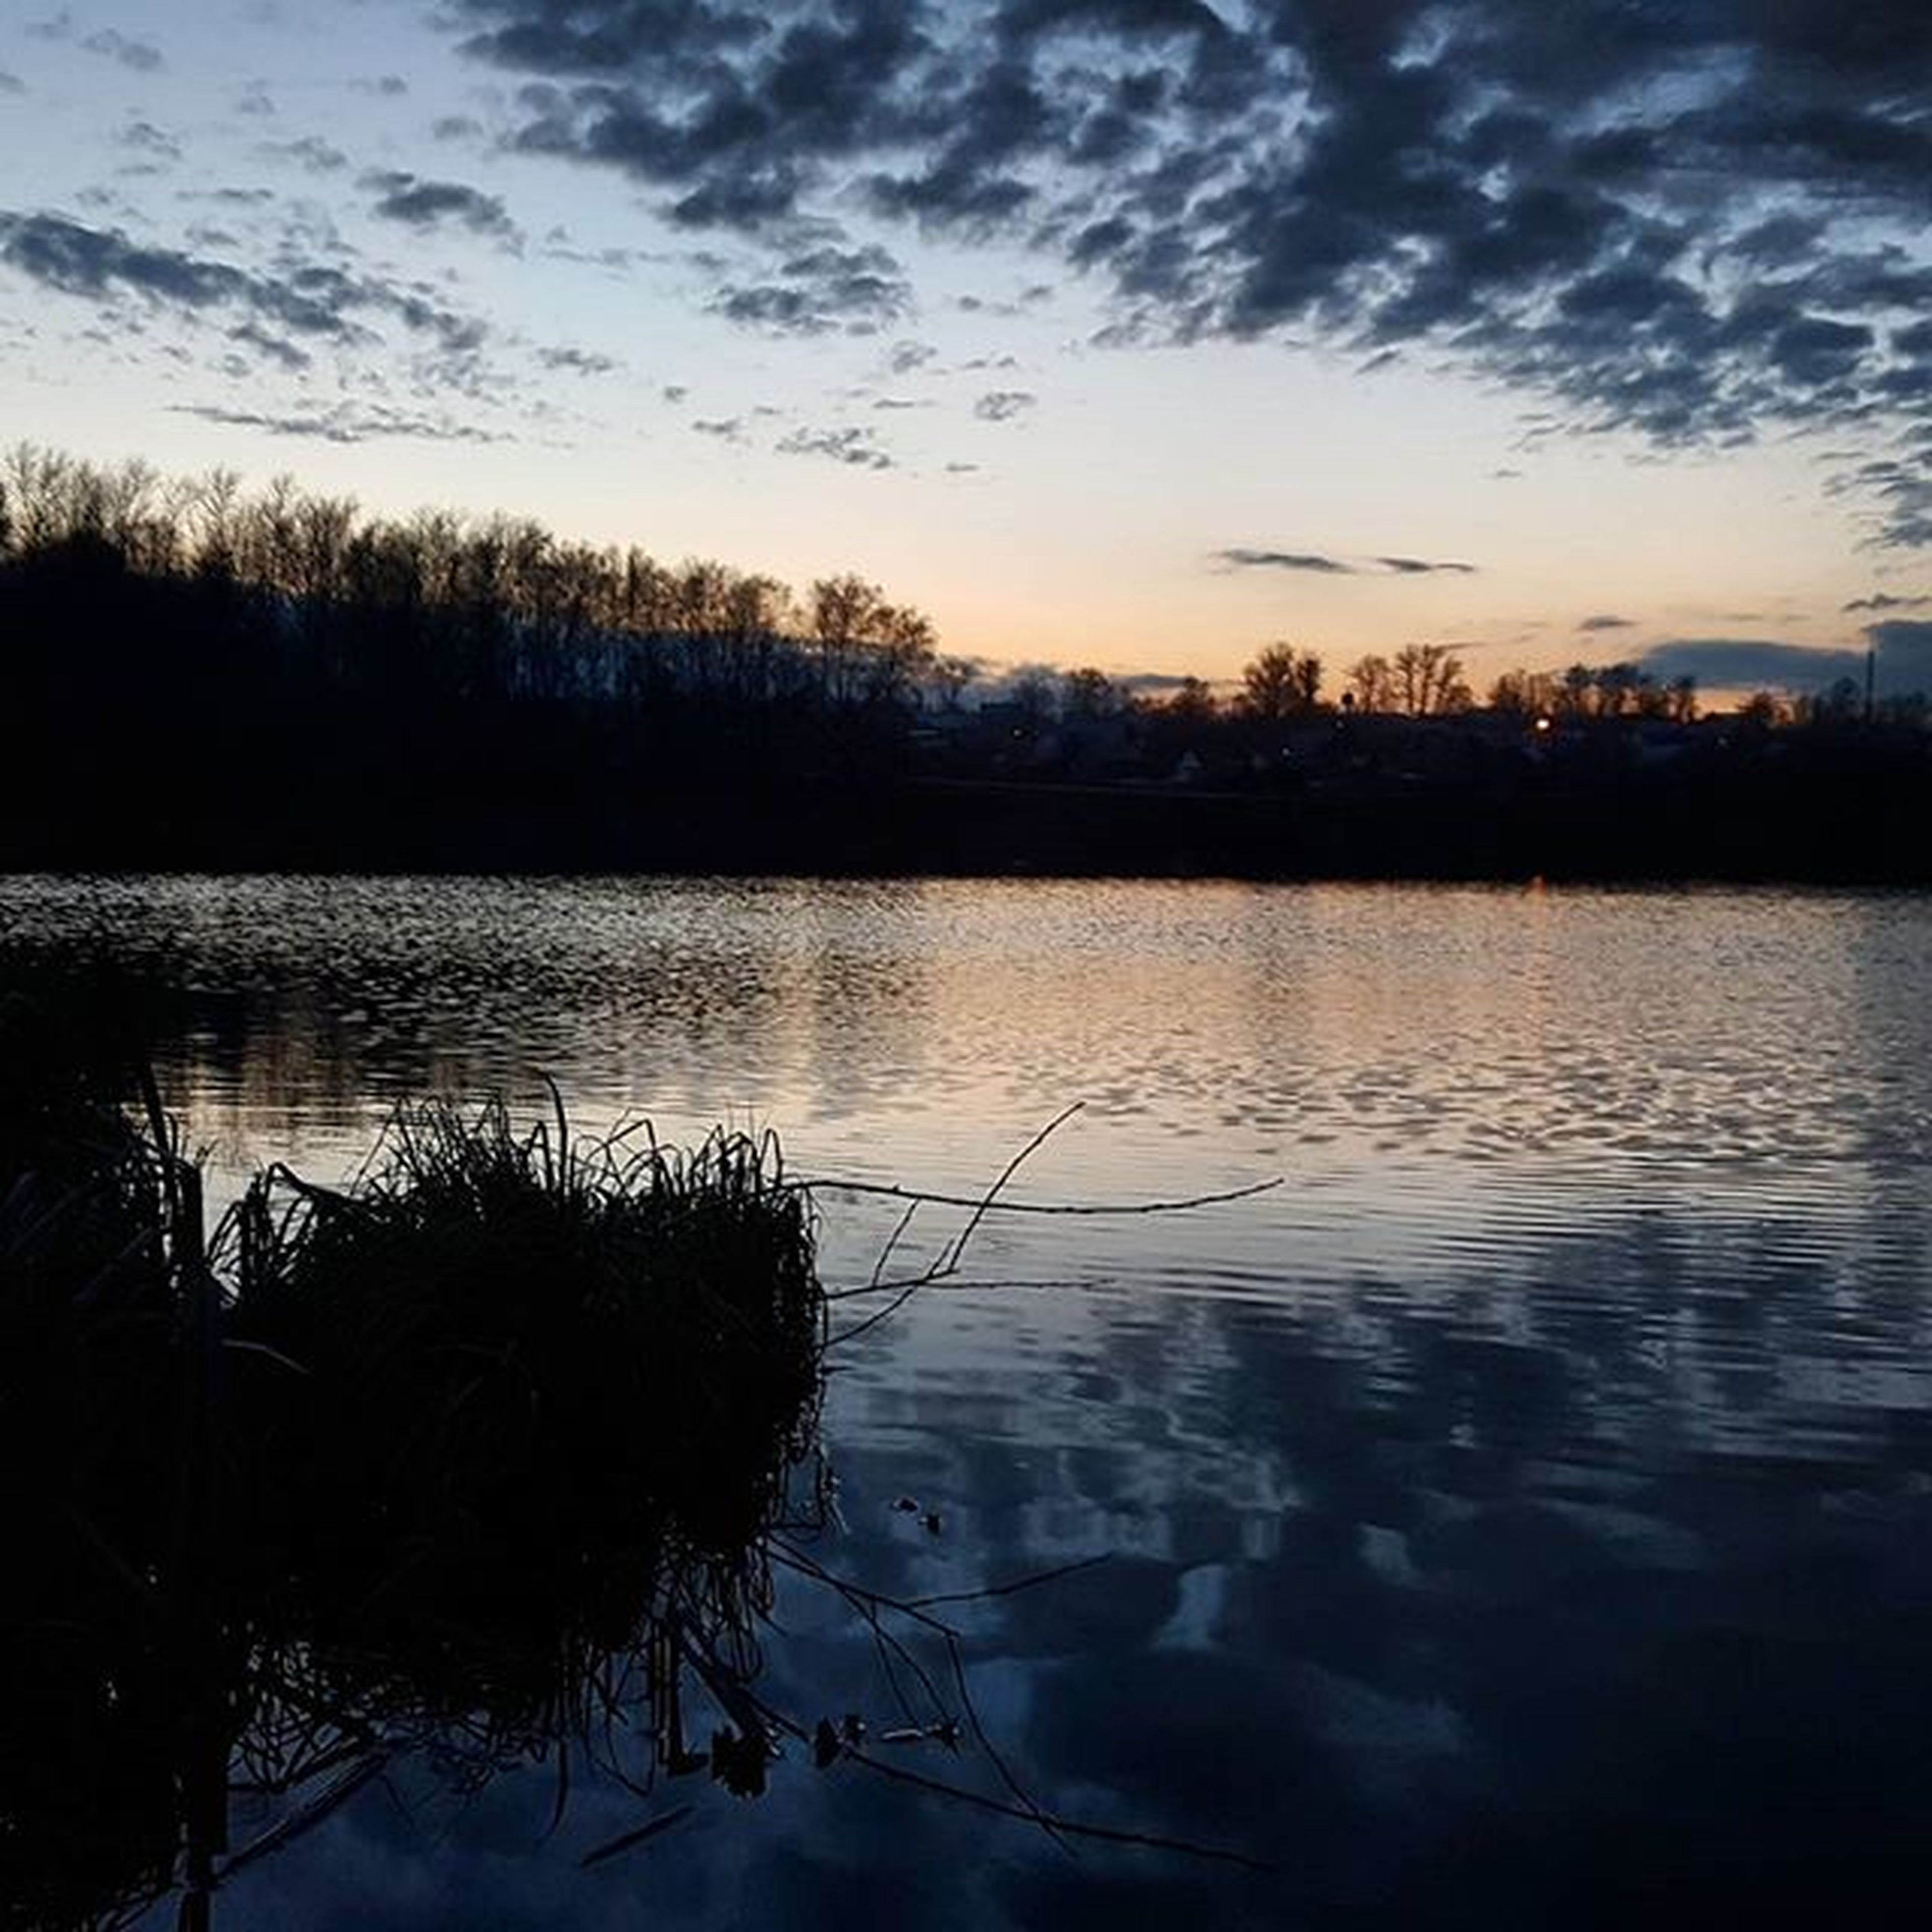 water, sunset, reflection, silhouette, lake, sky, tranquility, tranquil scene, scenics, beauty in nature, cloud - sky, waterfront, nature, tree, cloud, river, idyllic, dusk, outdoors, no people